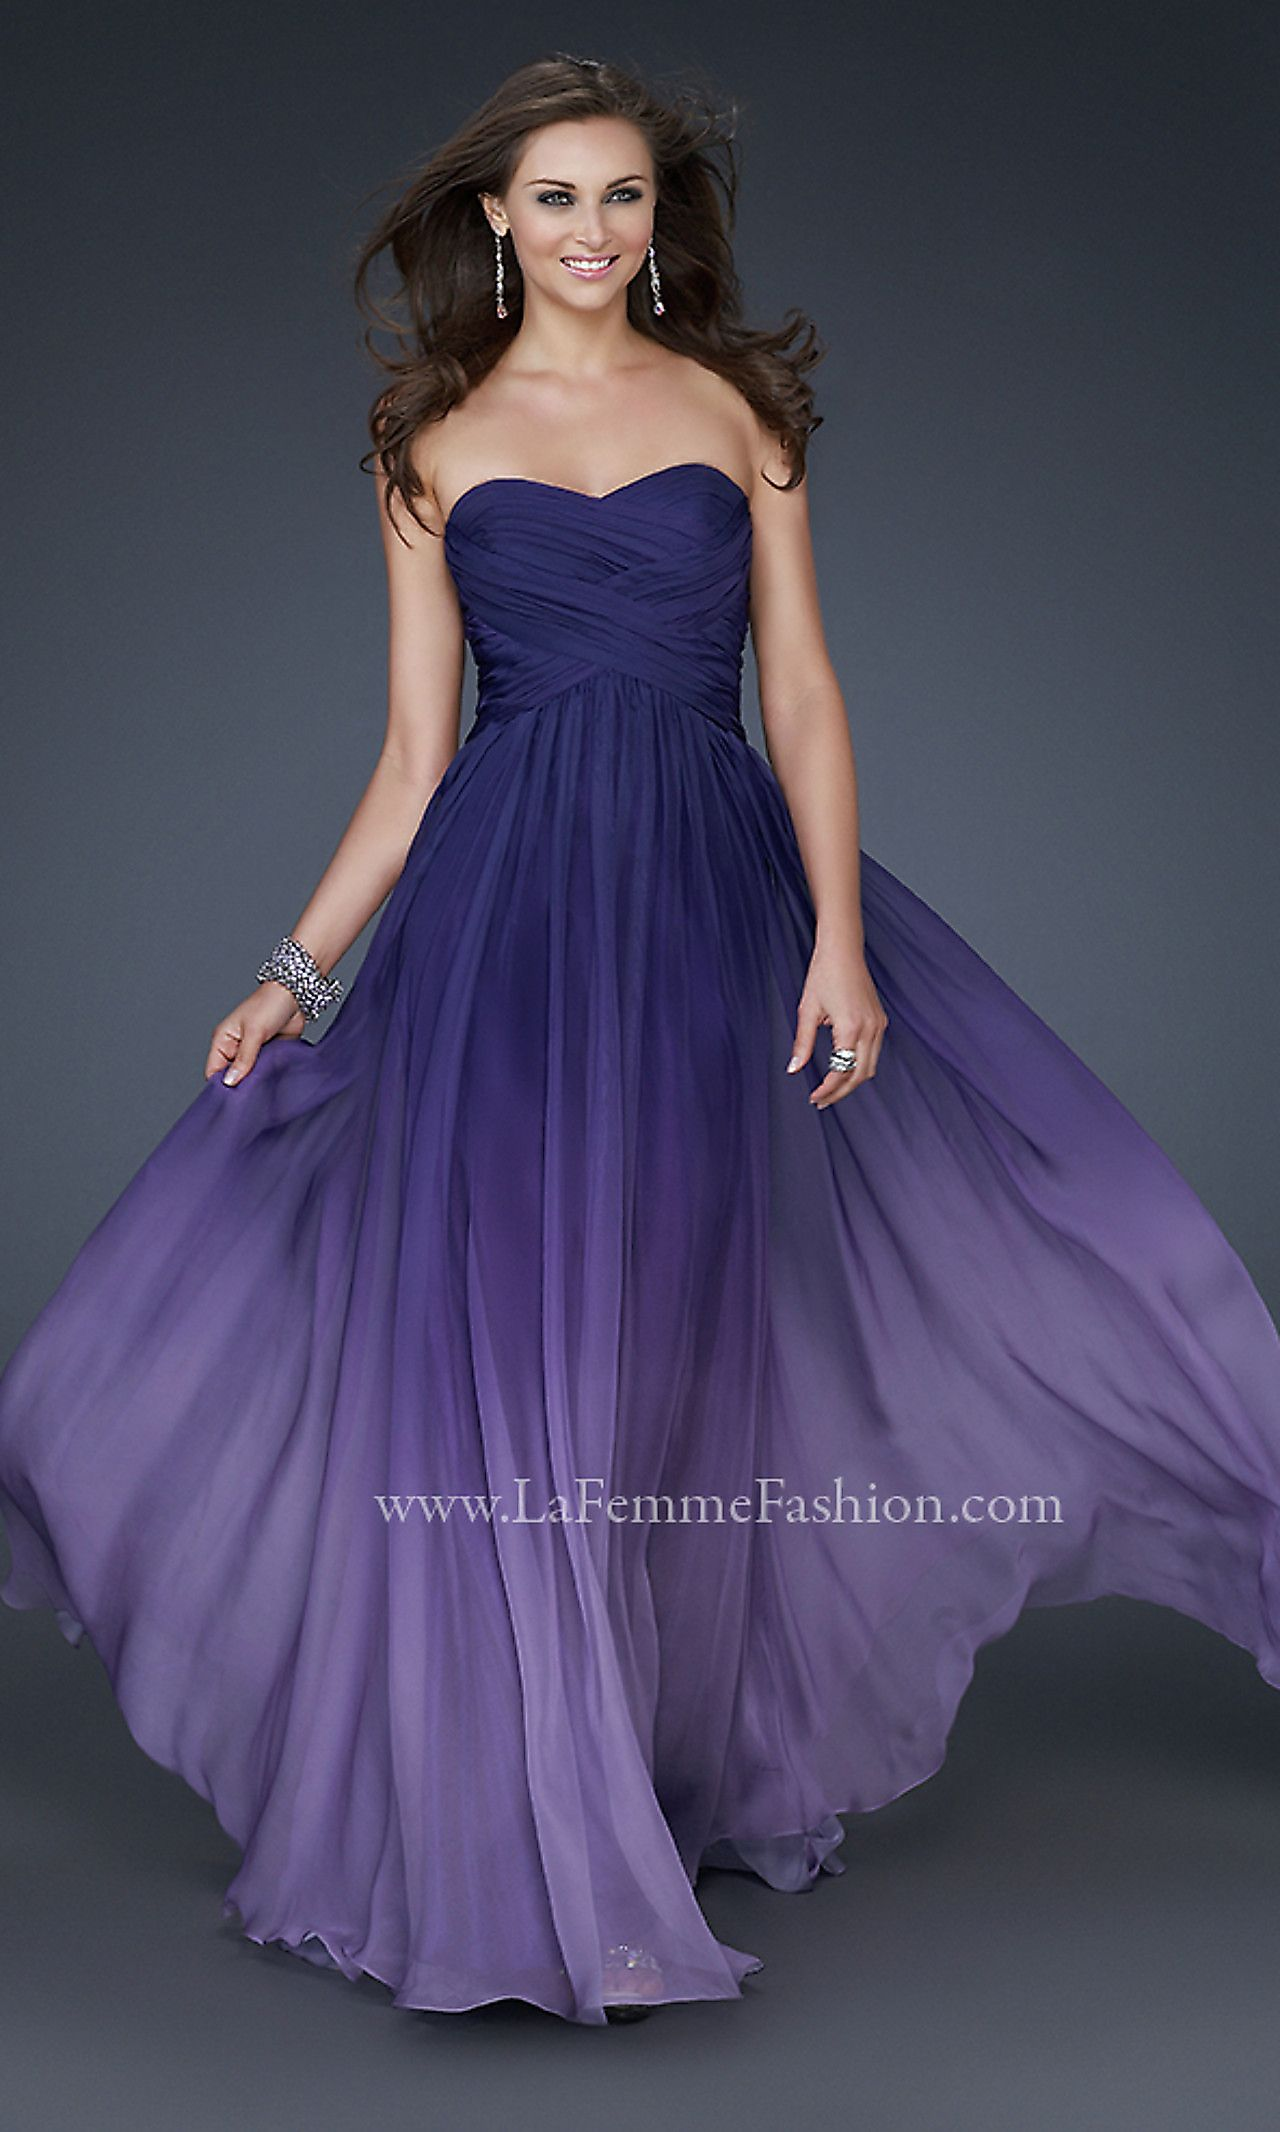 Majestic purple formal pinterest purple ombre ombre gown and